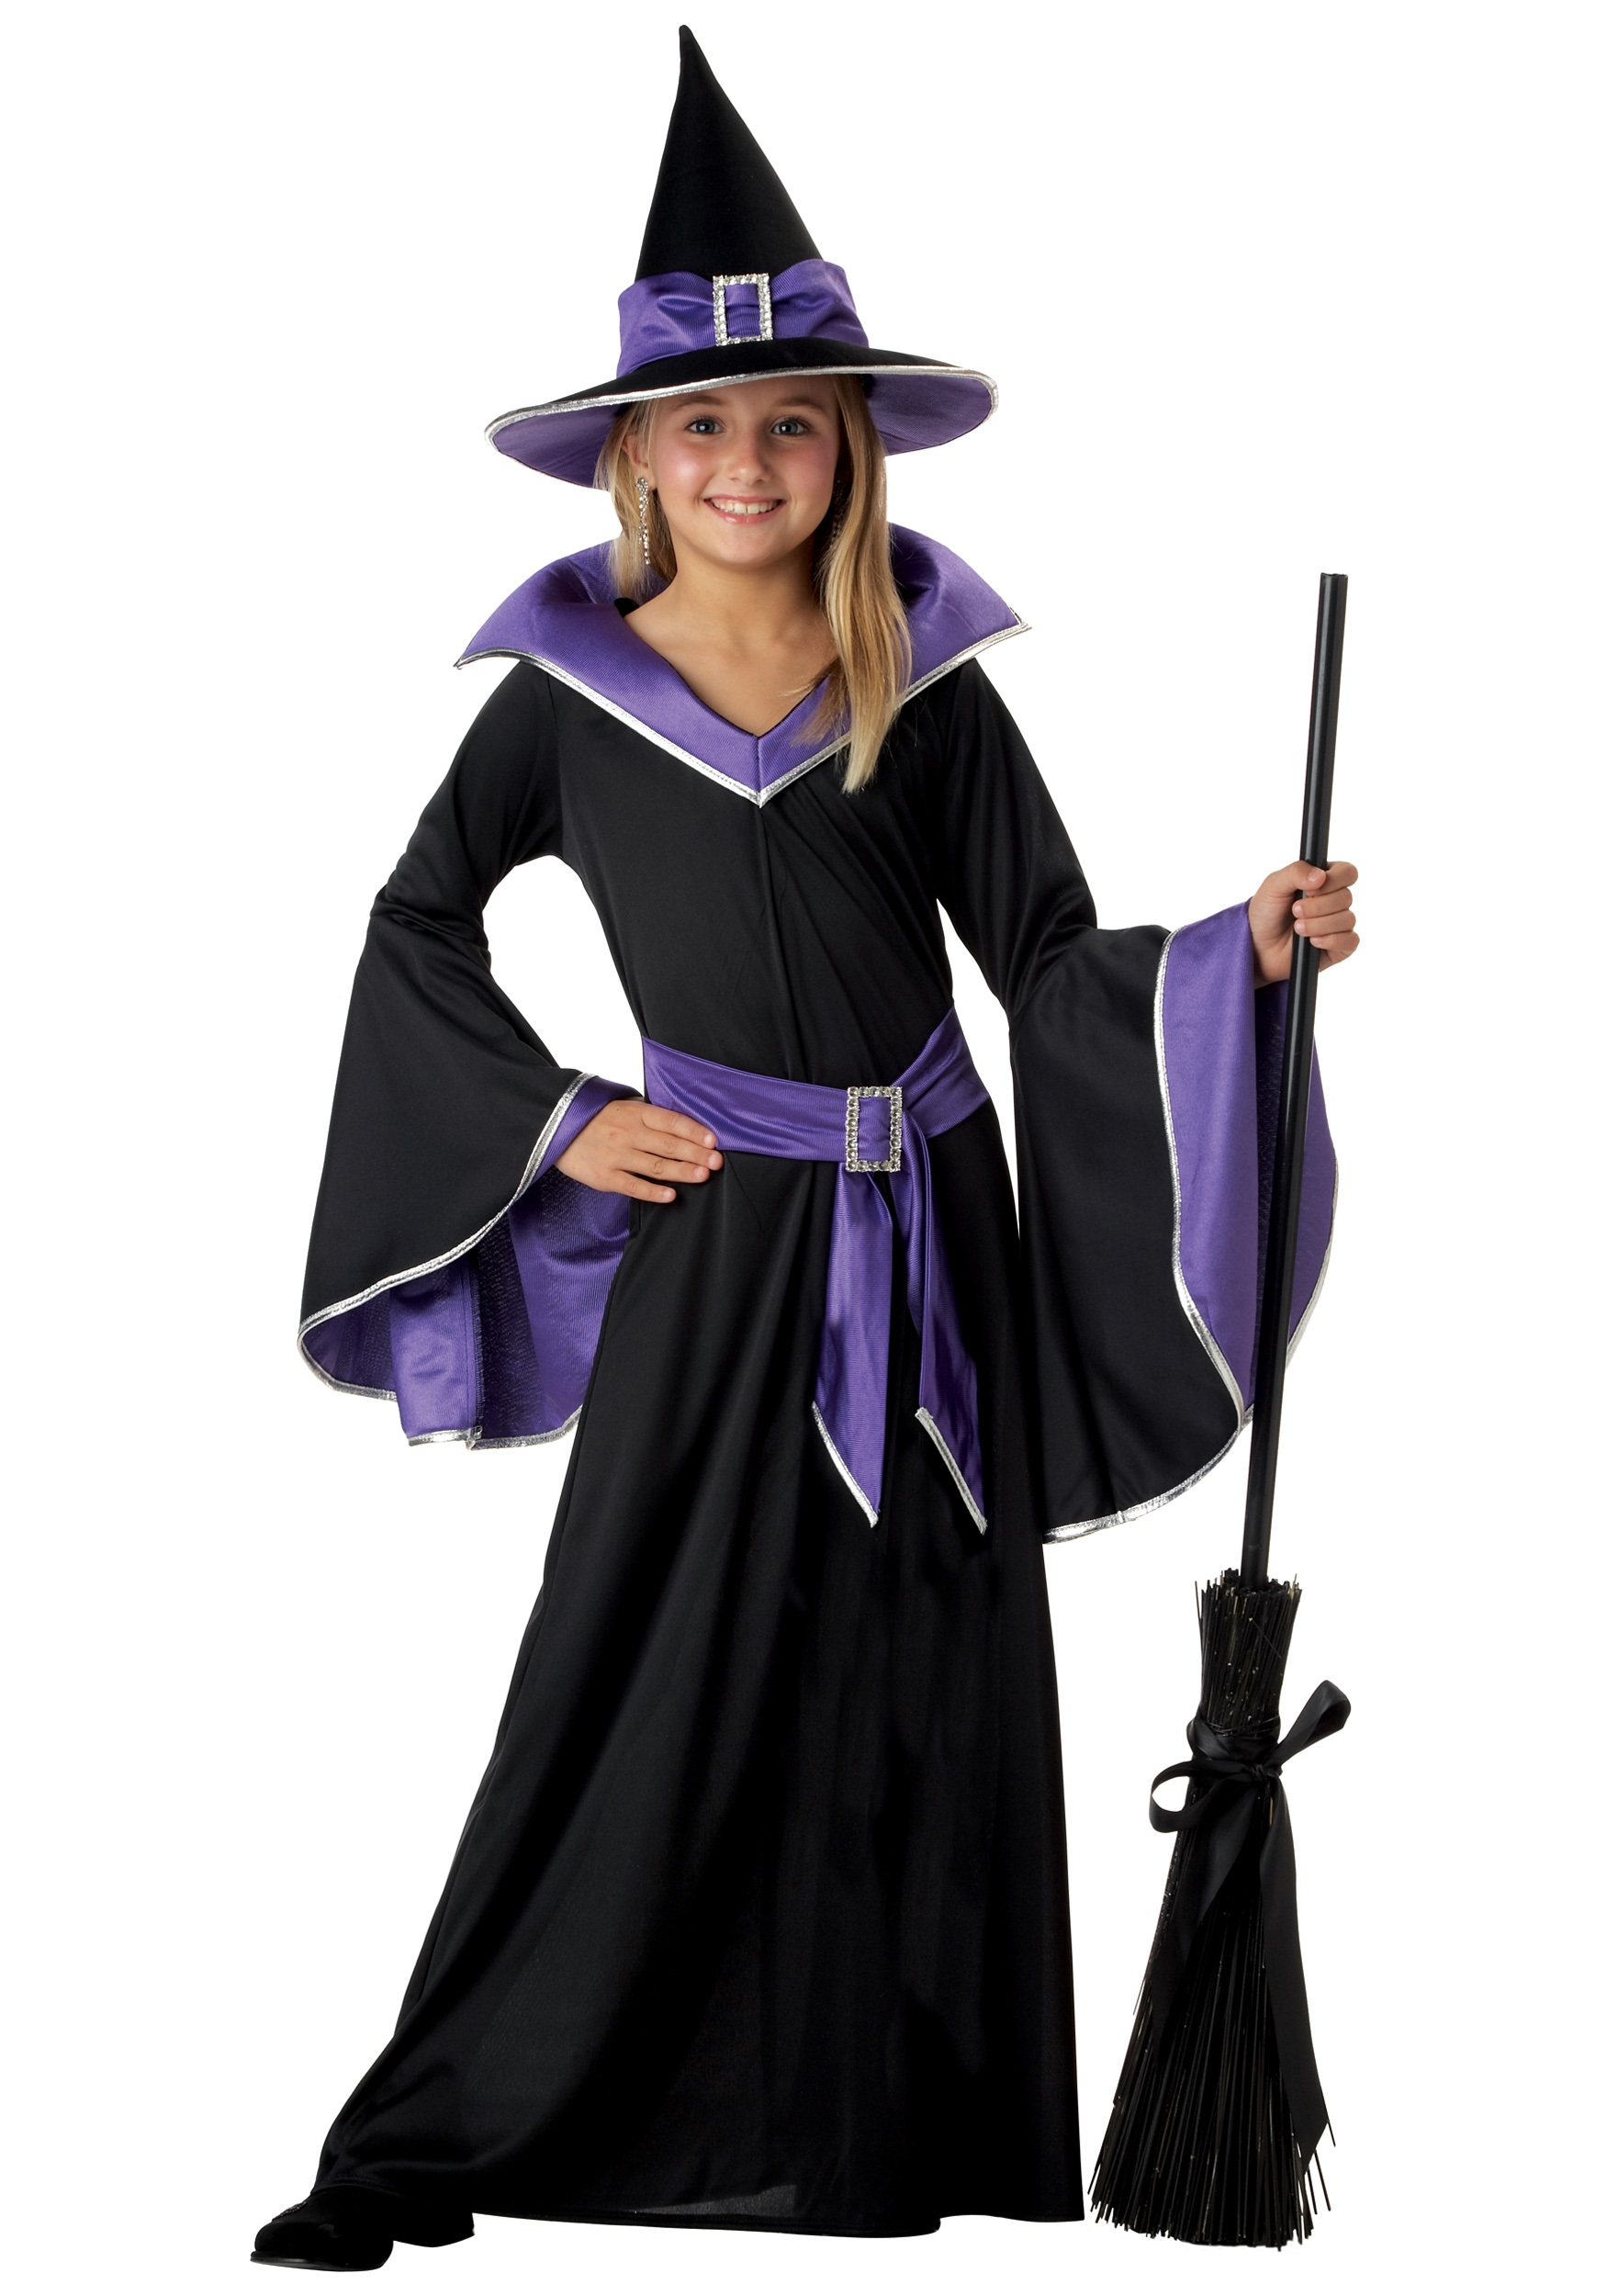 Child Glamour Witch Costume  sc 1 st  Halloween Costumes : glamorous halloween costume  - Germanpascual.Com